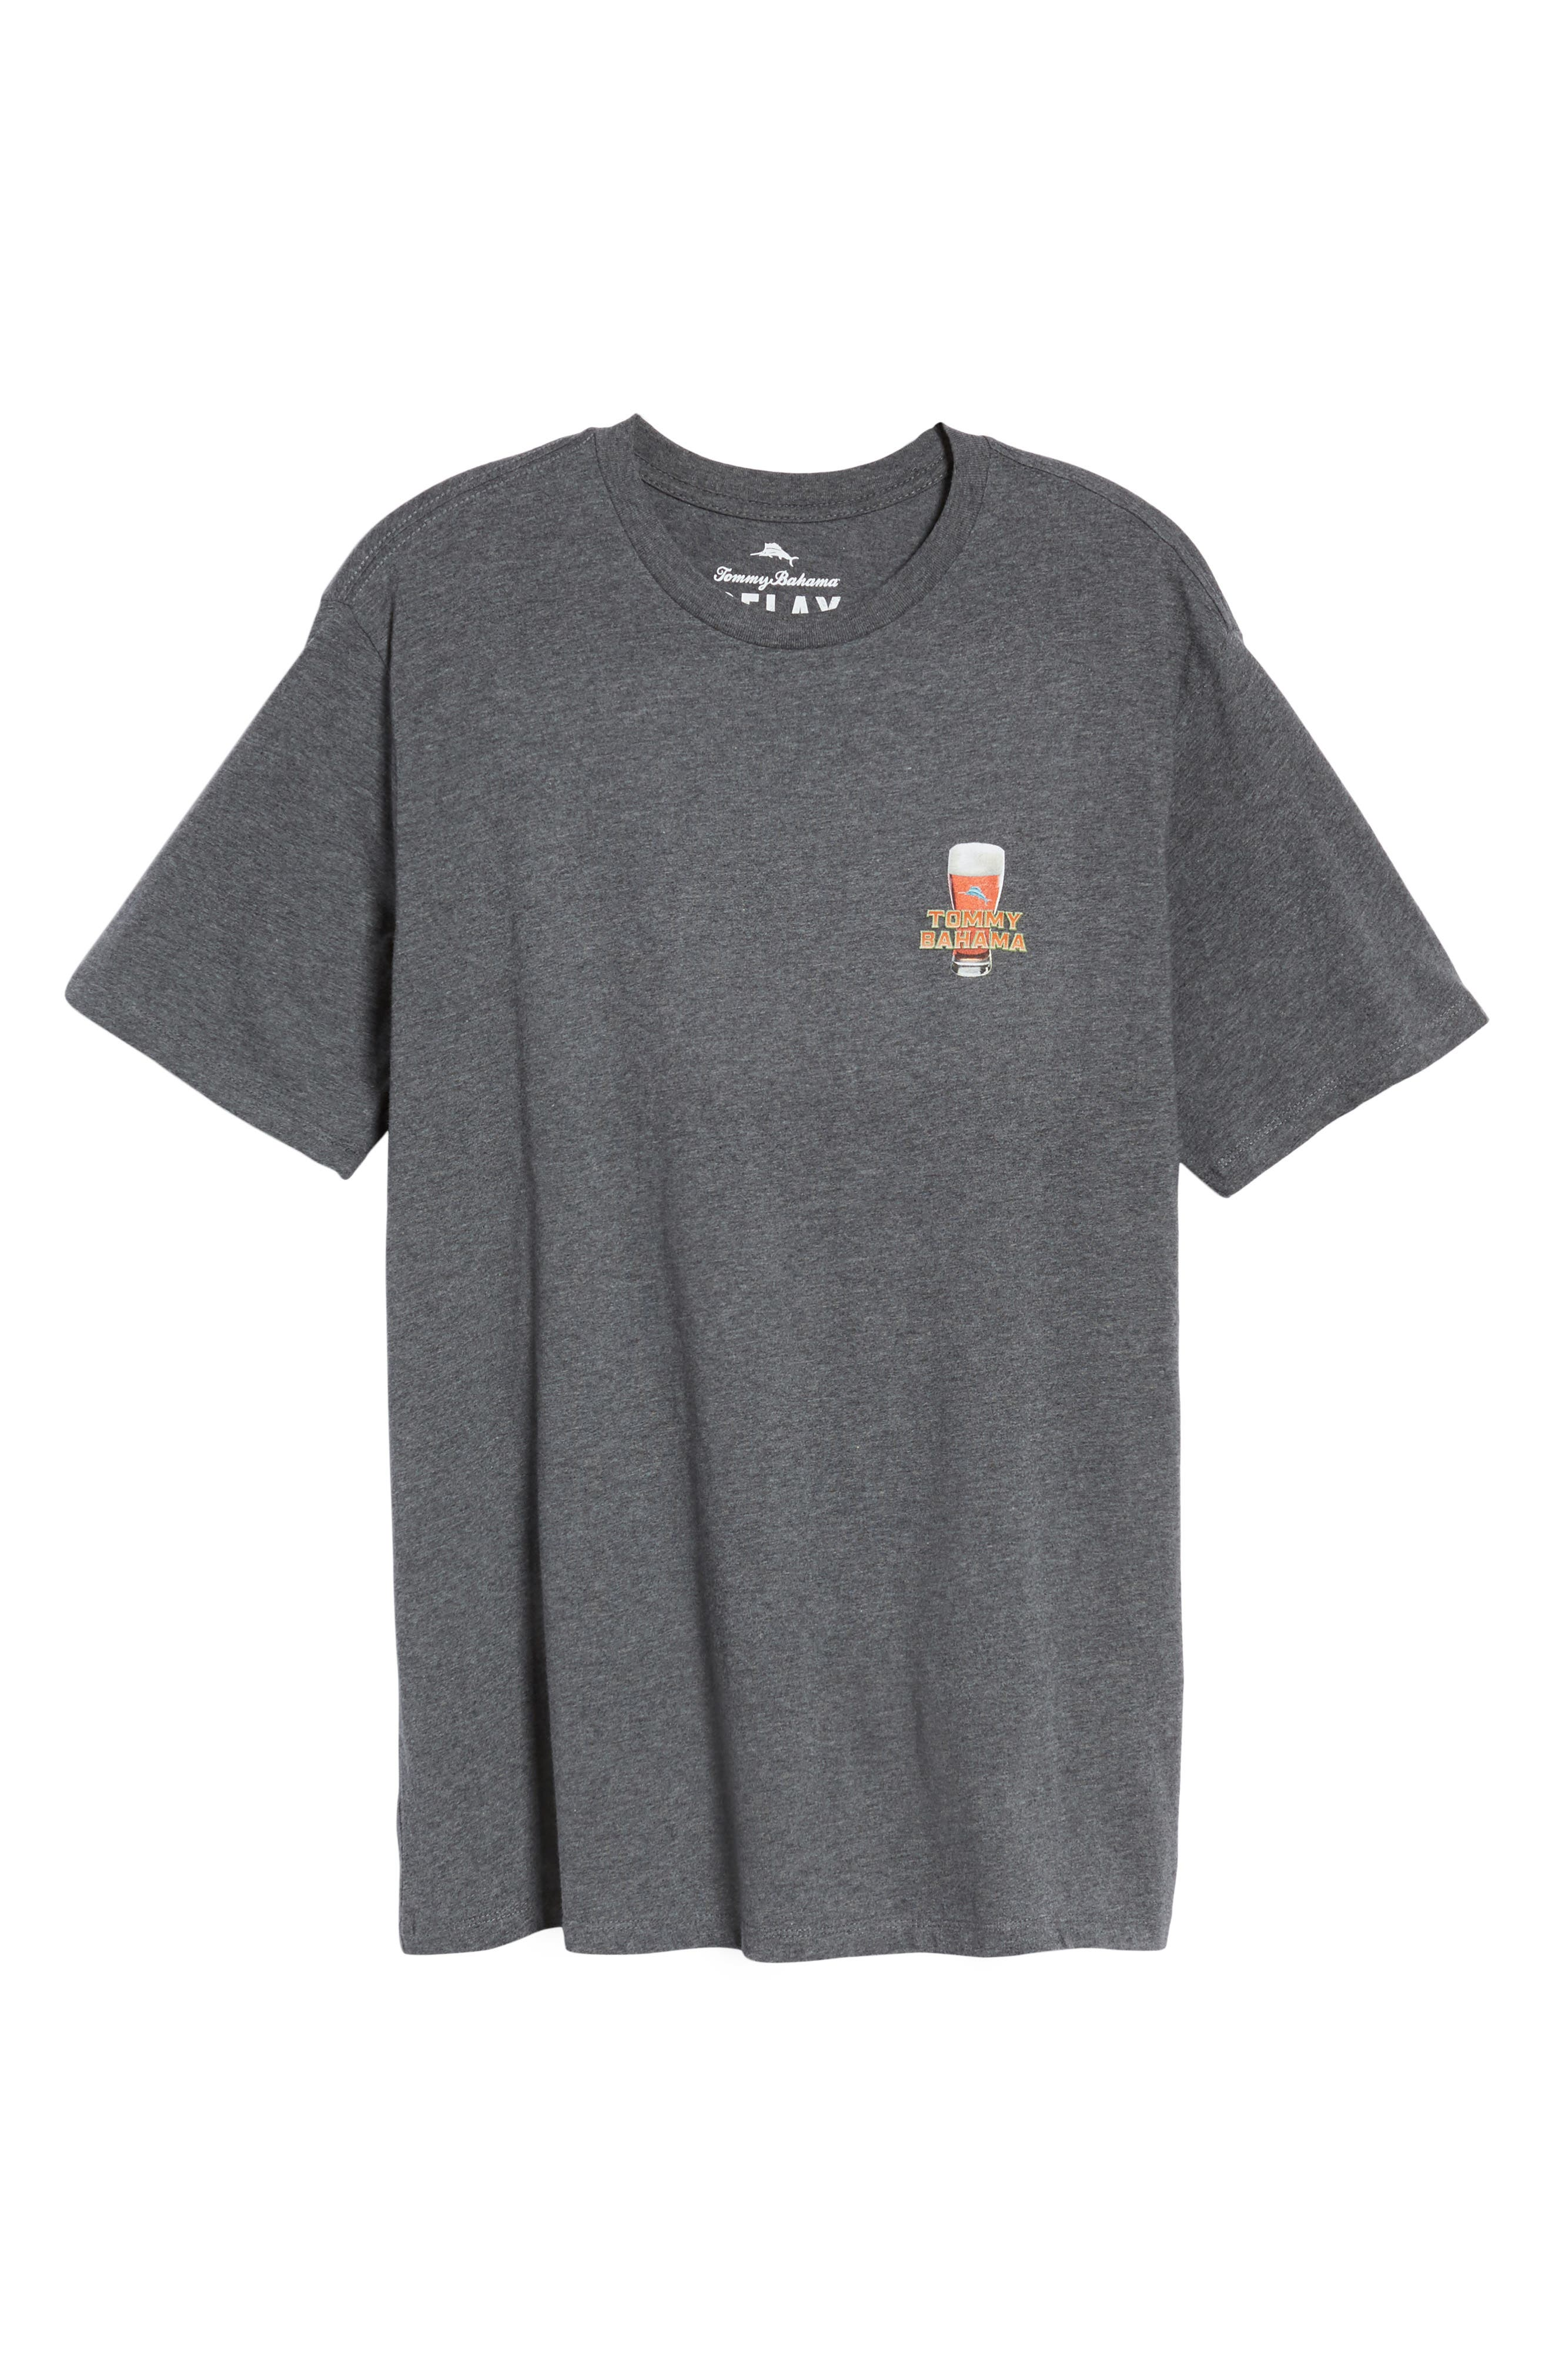 Room with a Brew T-Shirt,                             Alternate thumbnail 6, color,                             050